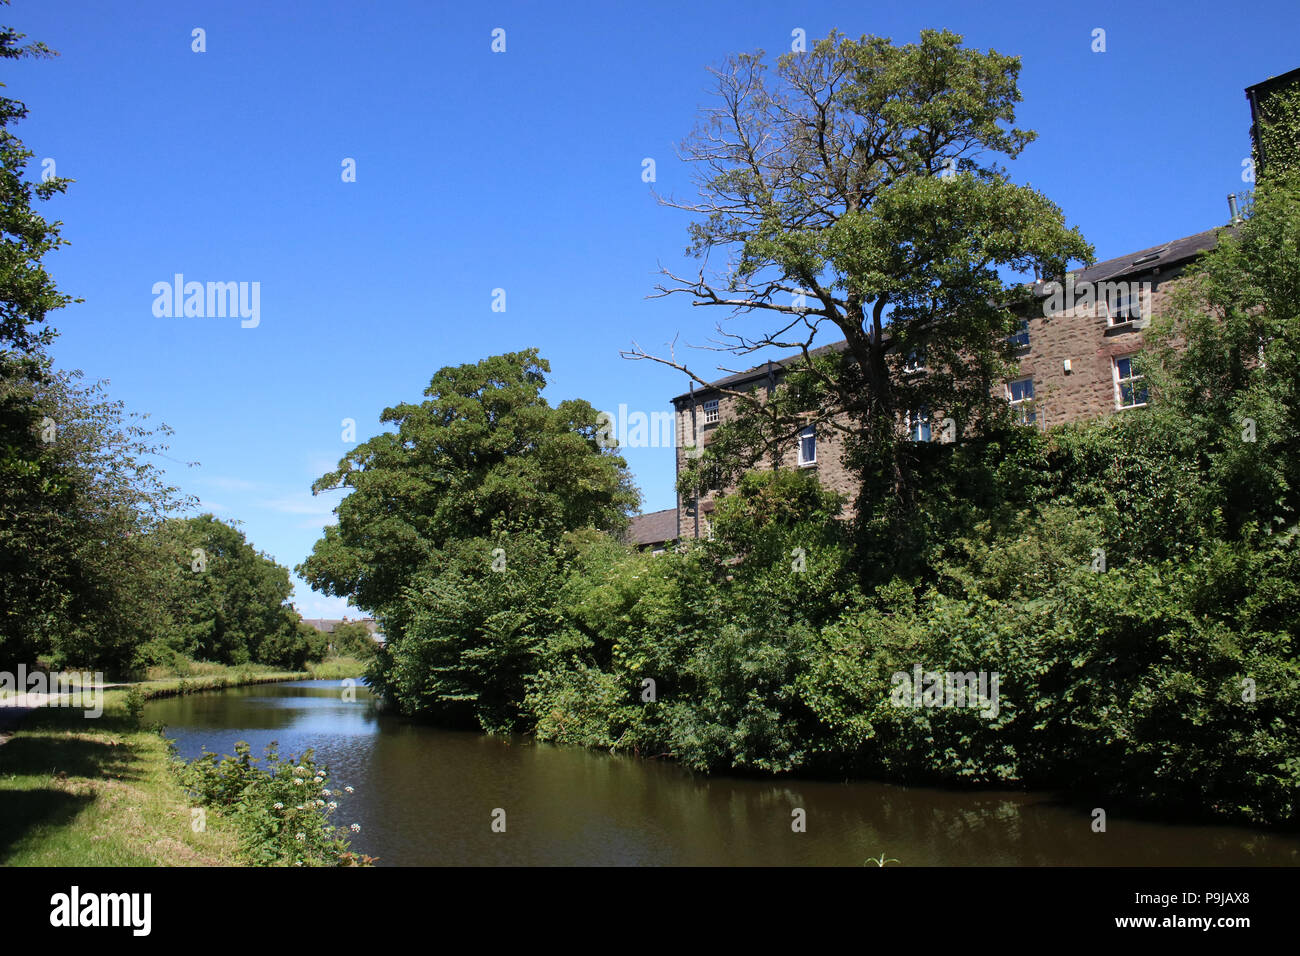 View along the Lancaster canal in the Freehold area of  Lancaster, Lancashire, England from near Moor lane looking along the towpath. - Stock Image